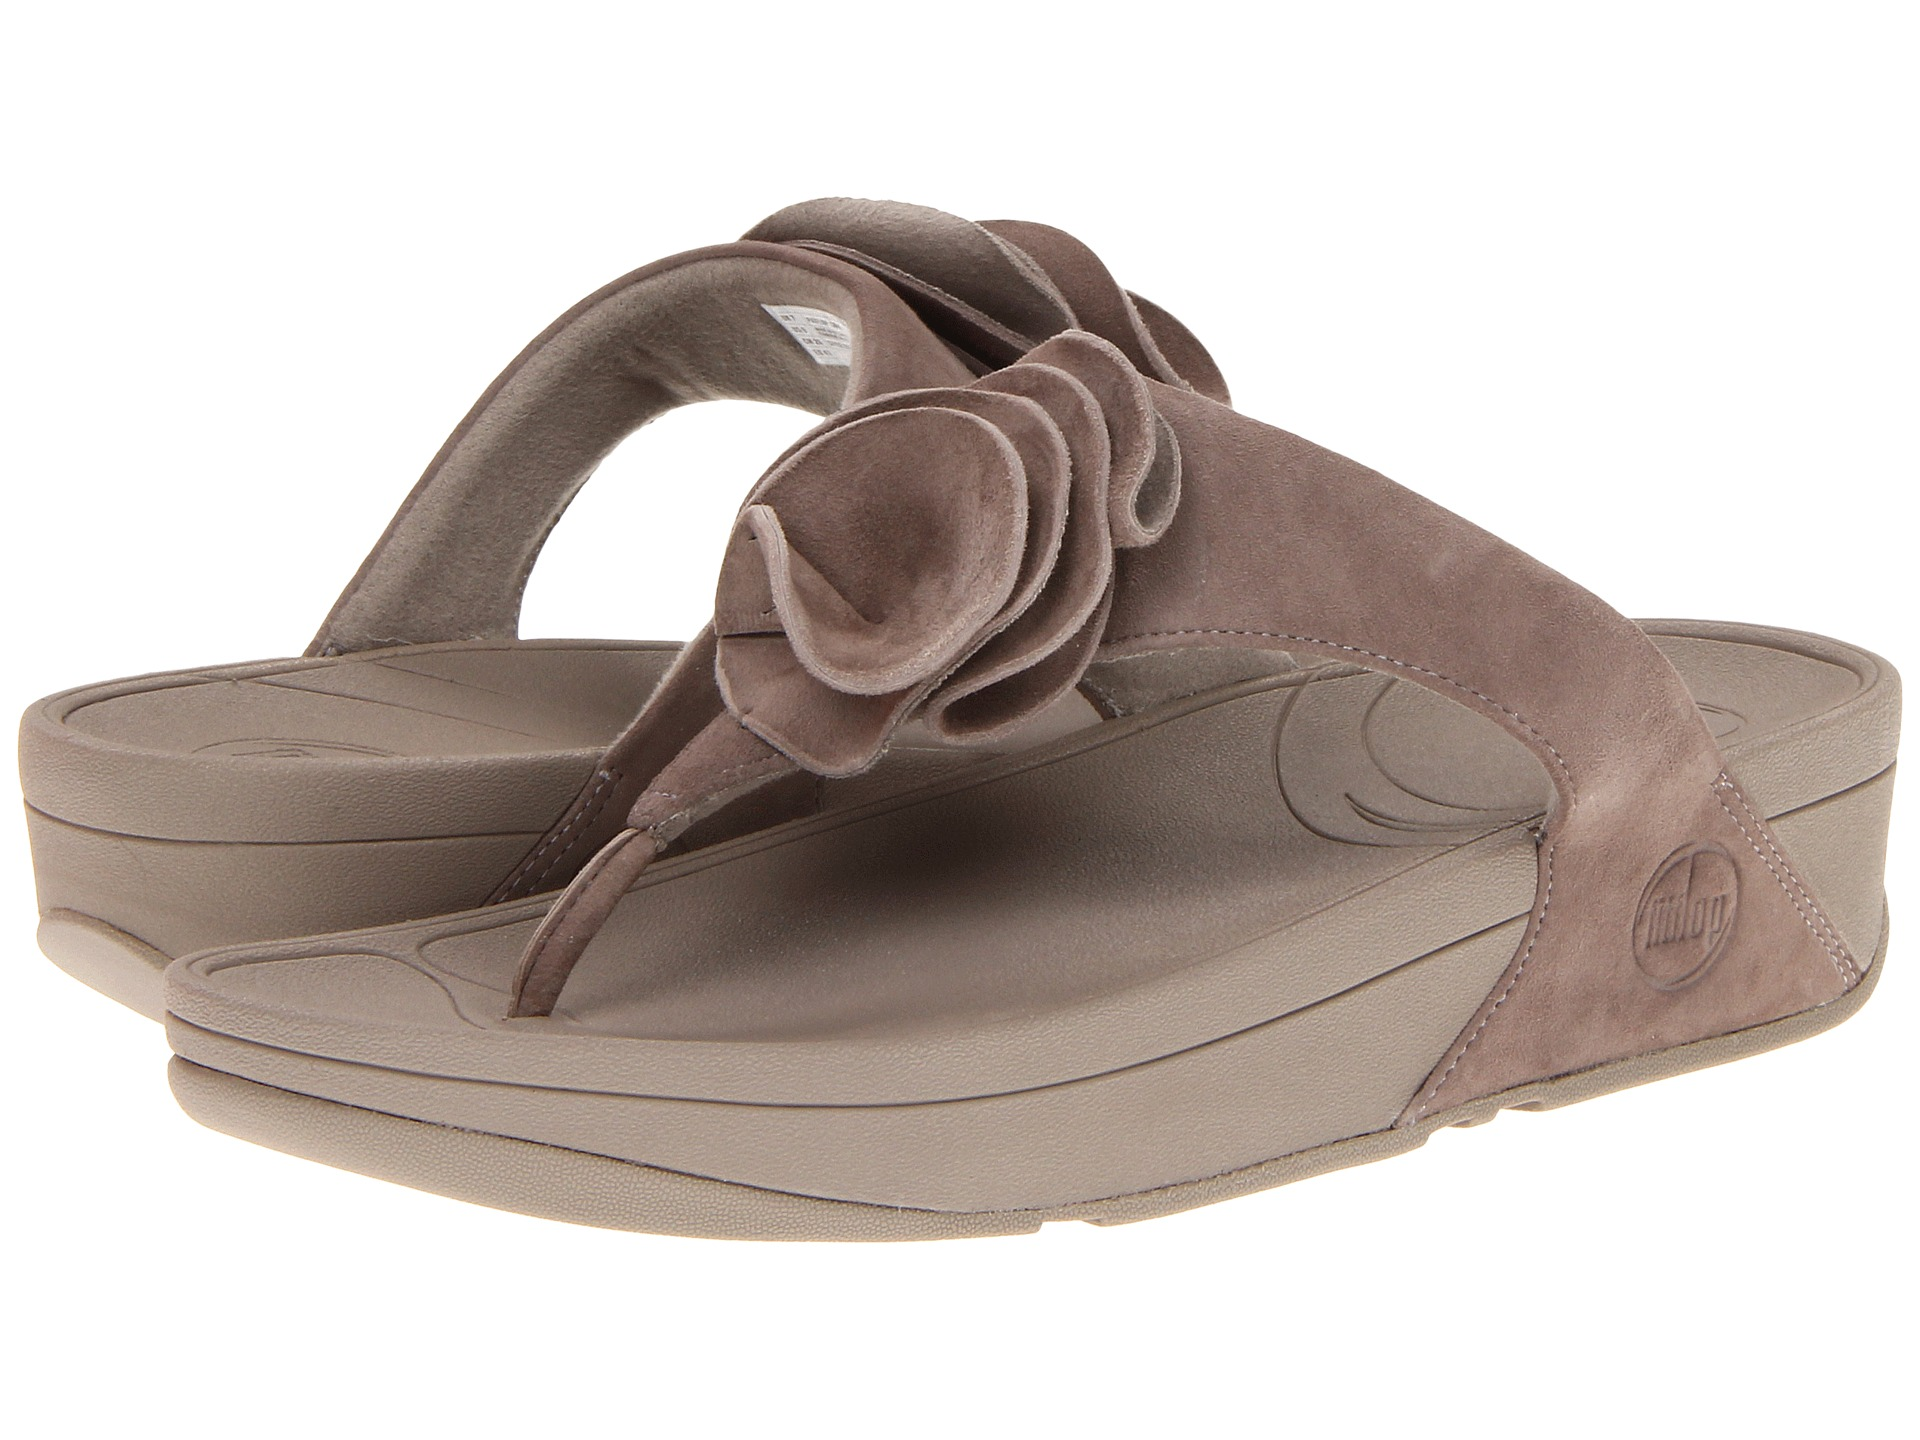 c8c798c41056e8 No results for fitflop yoko - Search Zappos